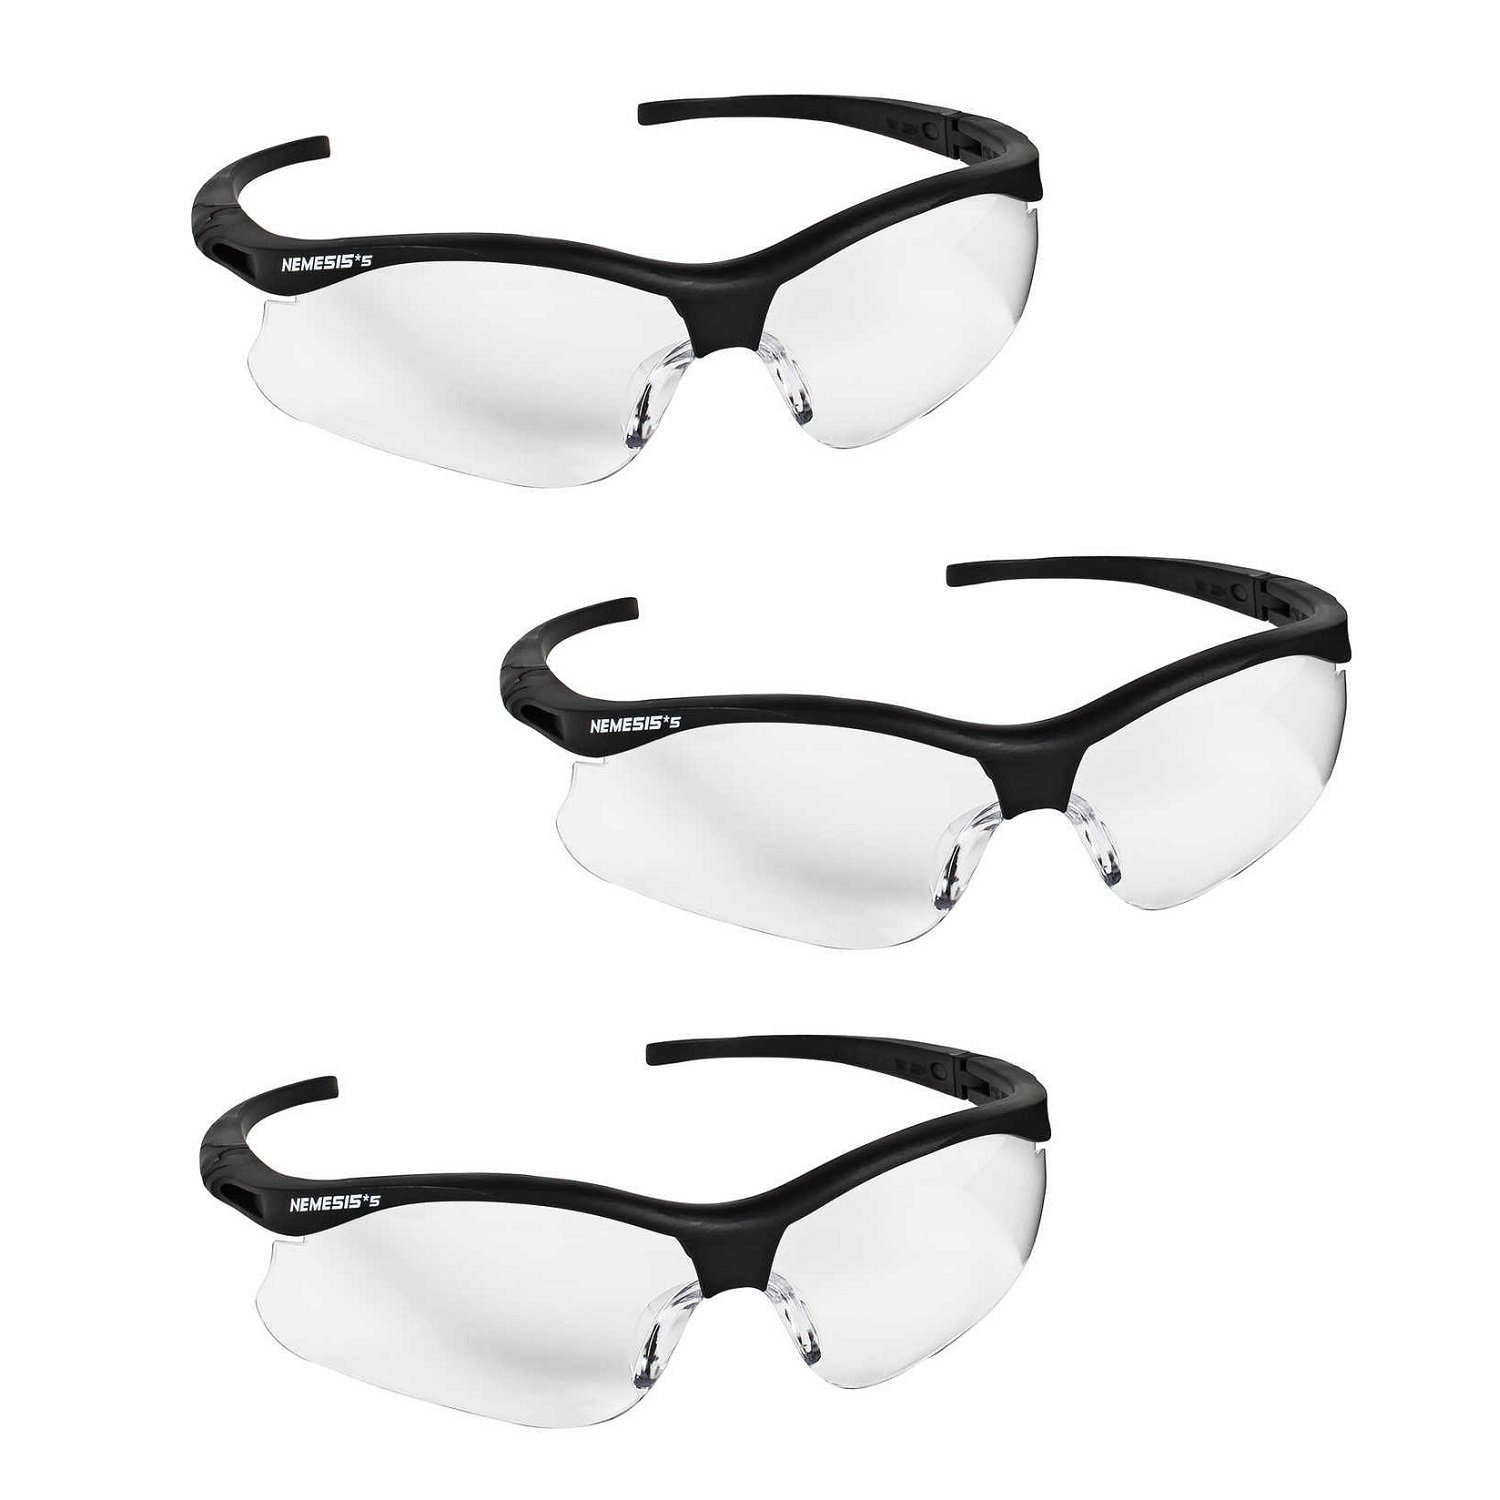 5496a4d307b9 Jackson Safety V30 22609 Nemesis Safety Glasses 3020707 (3 Pair) (Camo  Frame with Smoke Anti-Fog Lens) - - Amazon.com